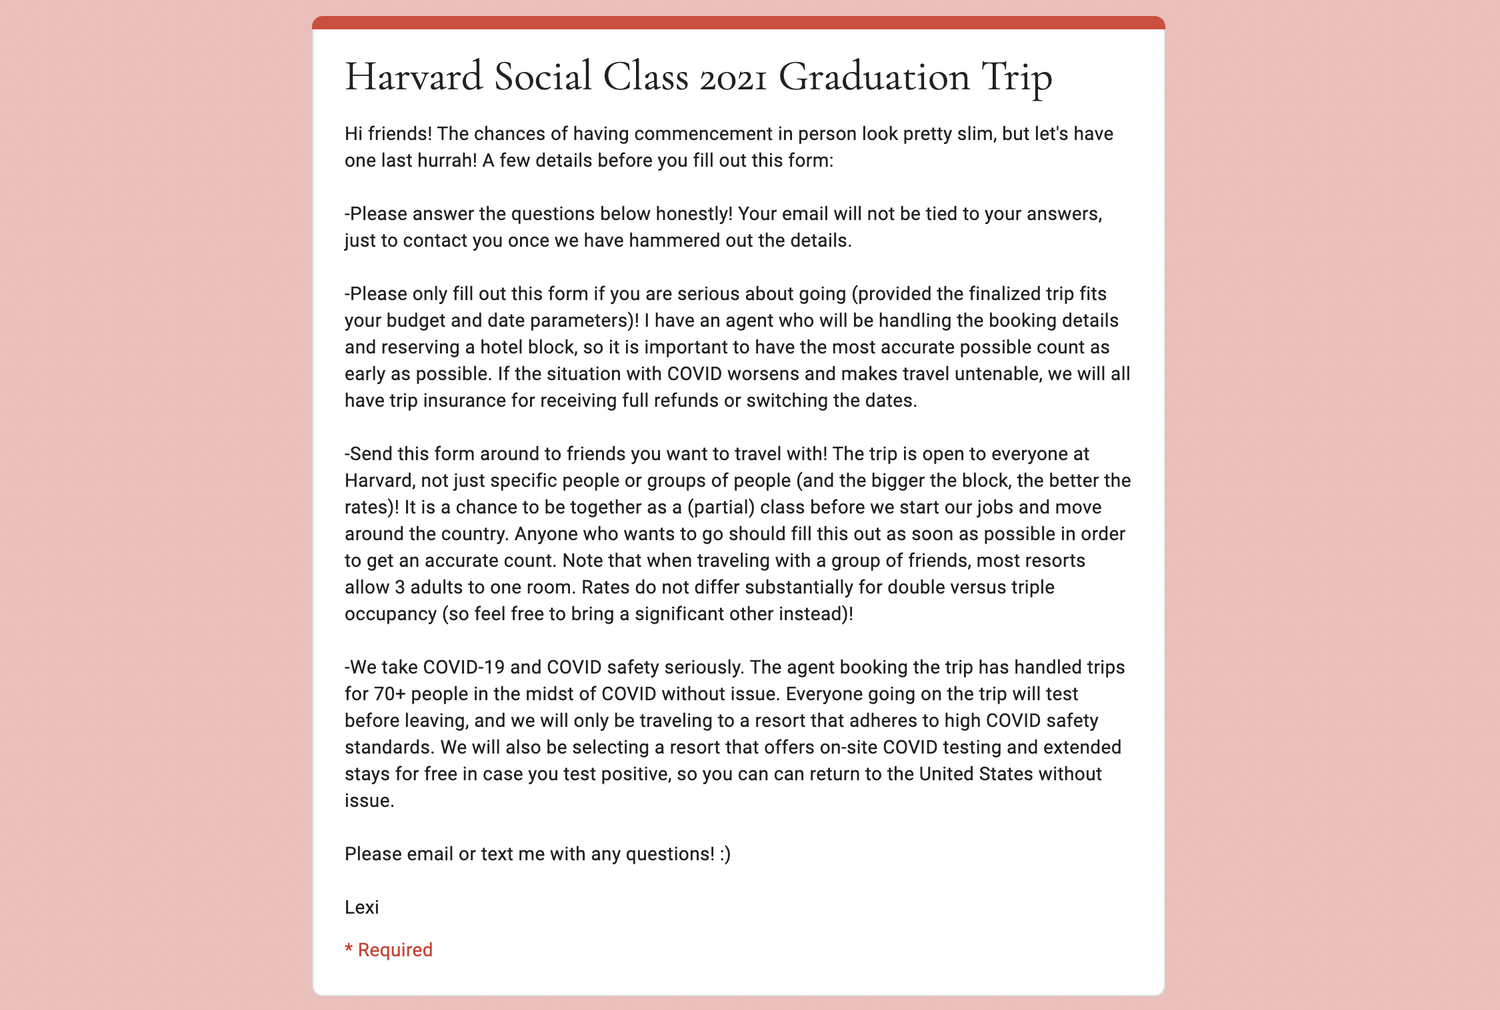 A Harvard senior circulated a Google form soliciting interest in a senior class trip amid the Covid-19 pandemic. The form appeared to no longer be accepting responses Tuesday evening.